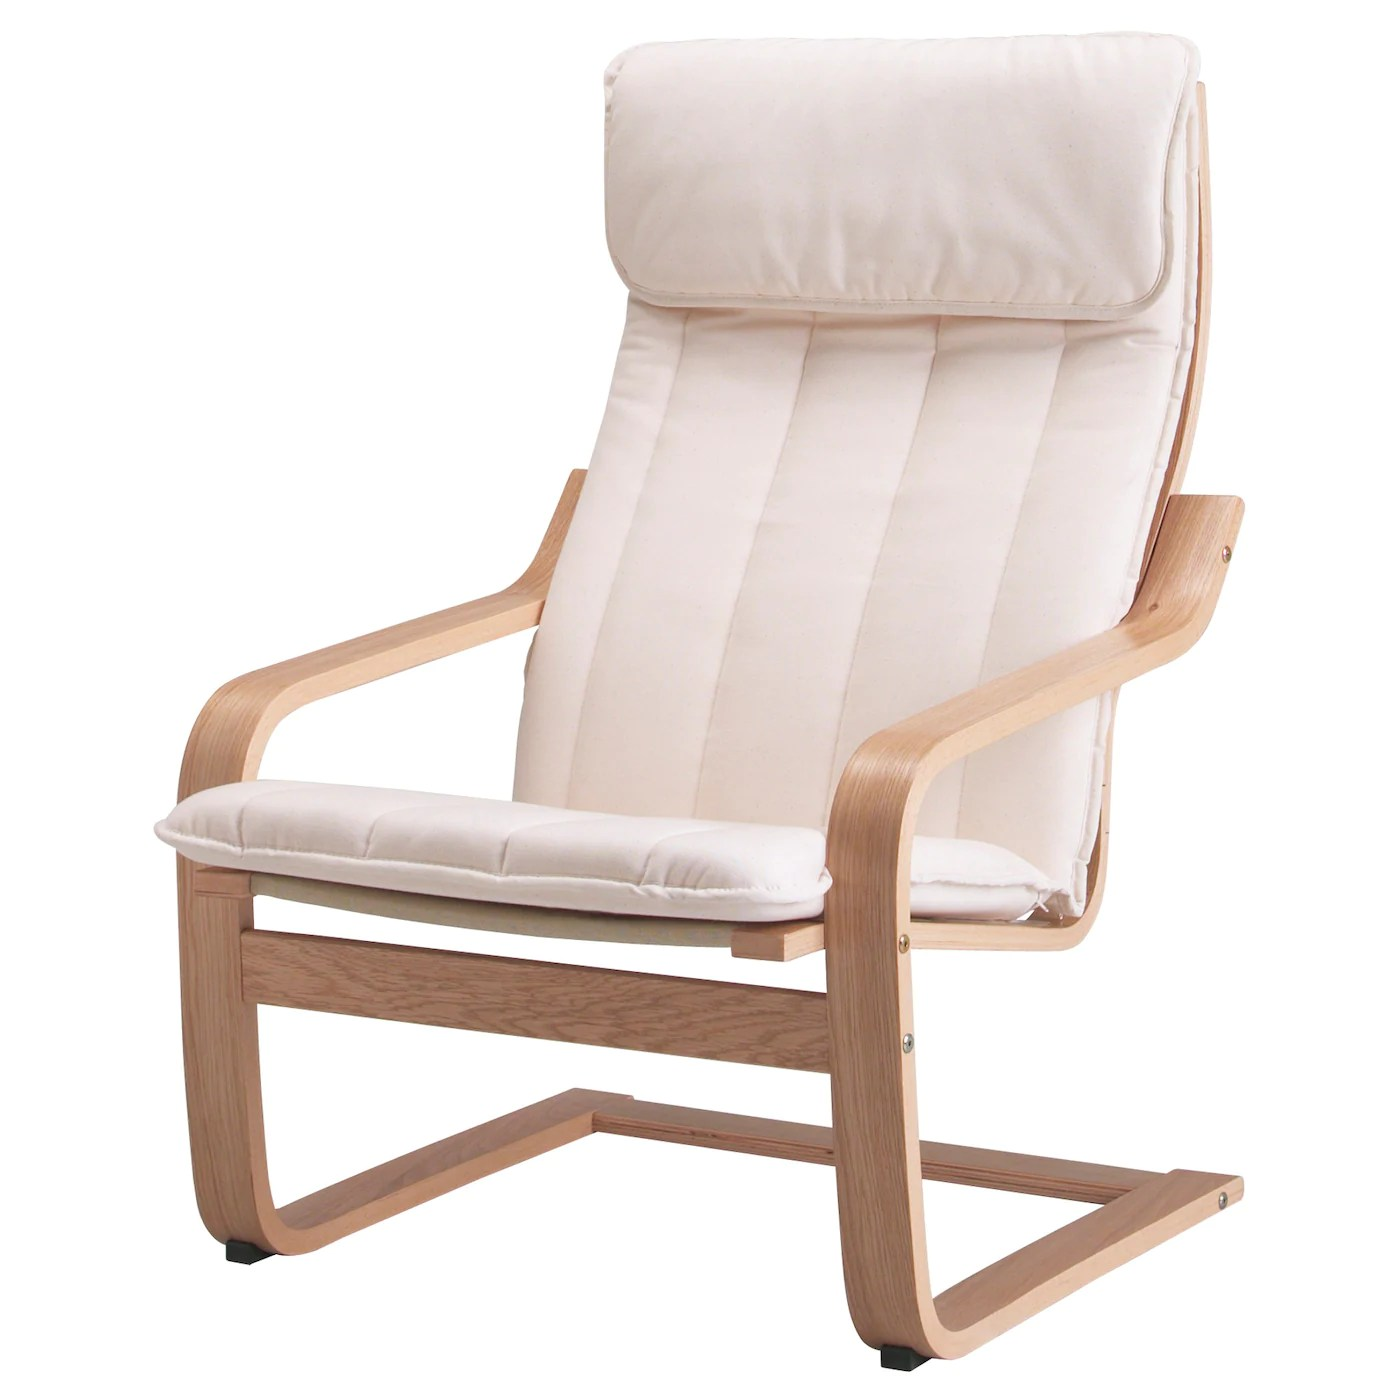 ikea arm chairs nursery rocking chair kijiji poÄng armchair oak veneer ransta natural